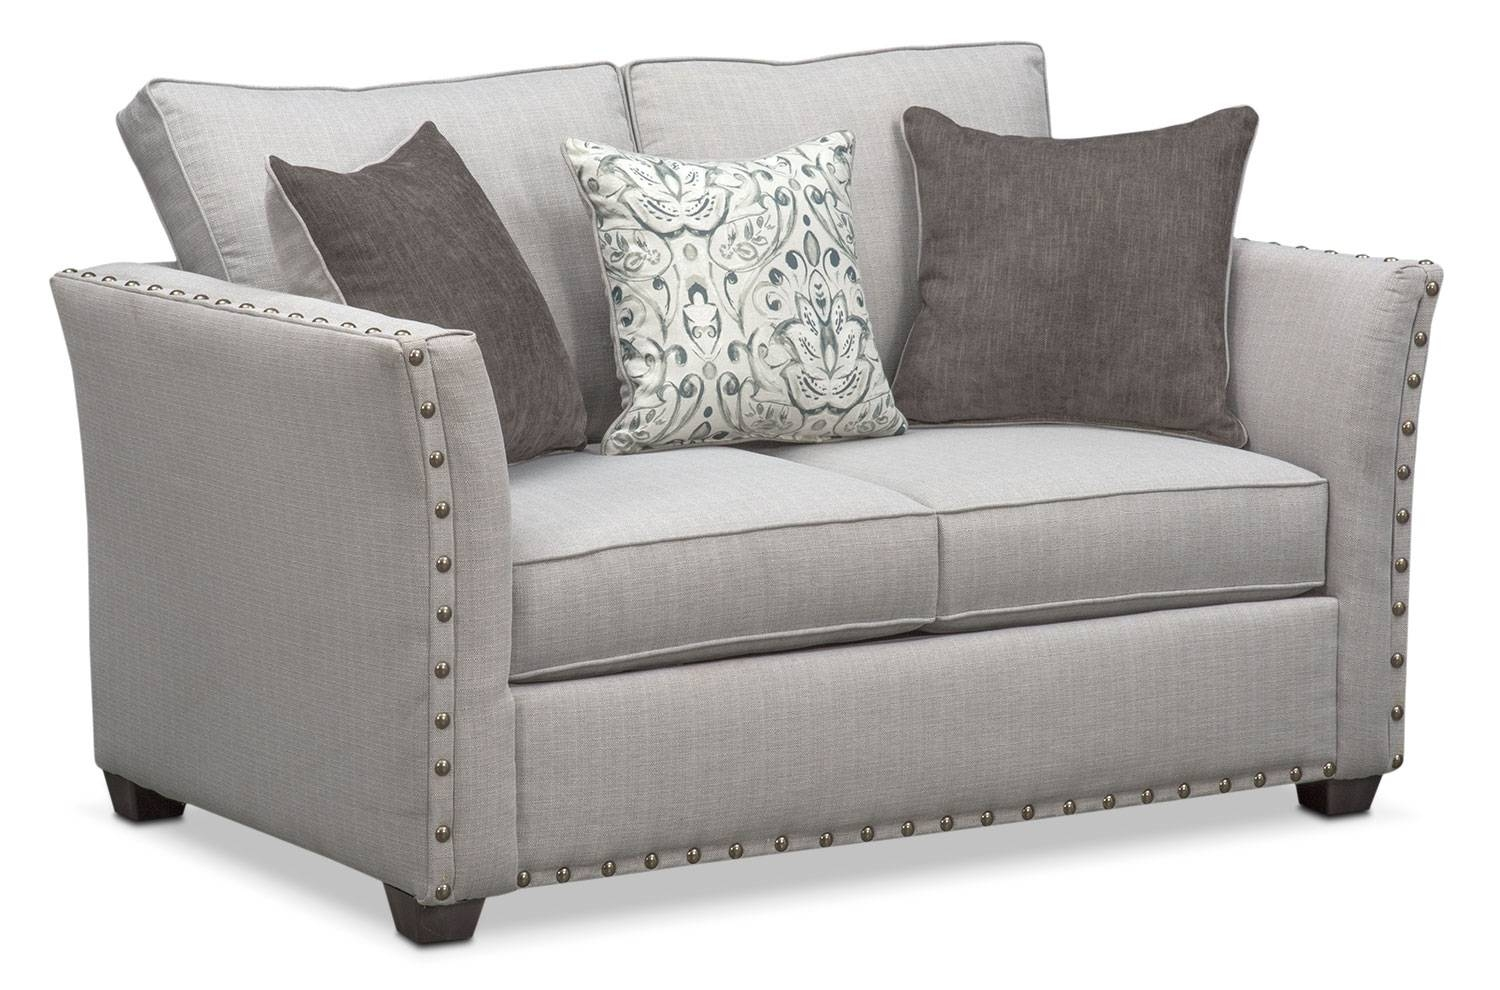 Mckenna Sofa, Loveseat And Accent Chair Set - Pewter | Value City pertaining to Sofa Loveseat and Chairs (Image 17 of 30)